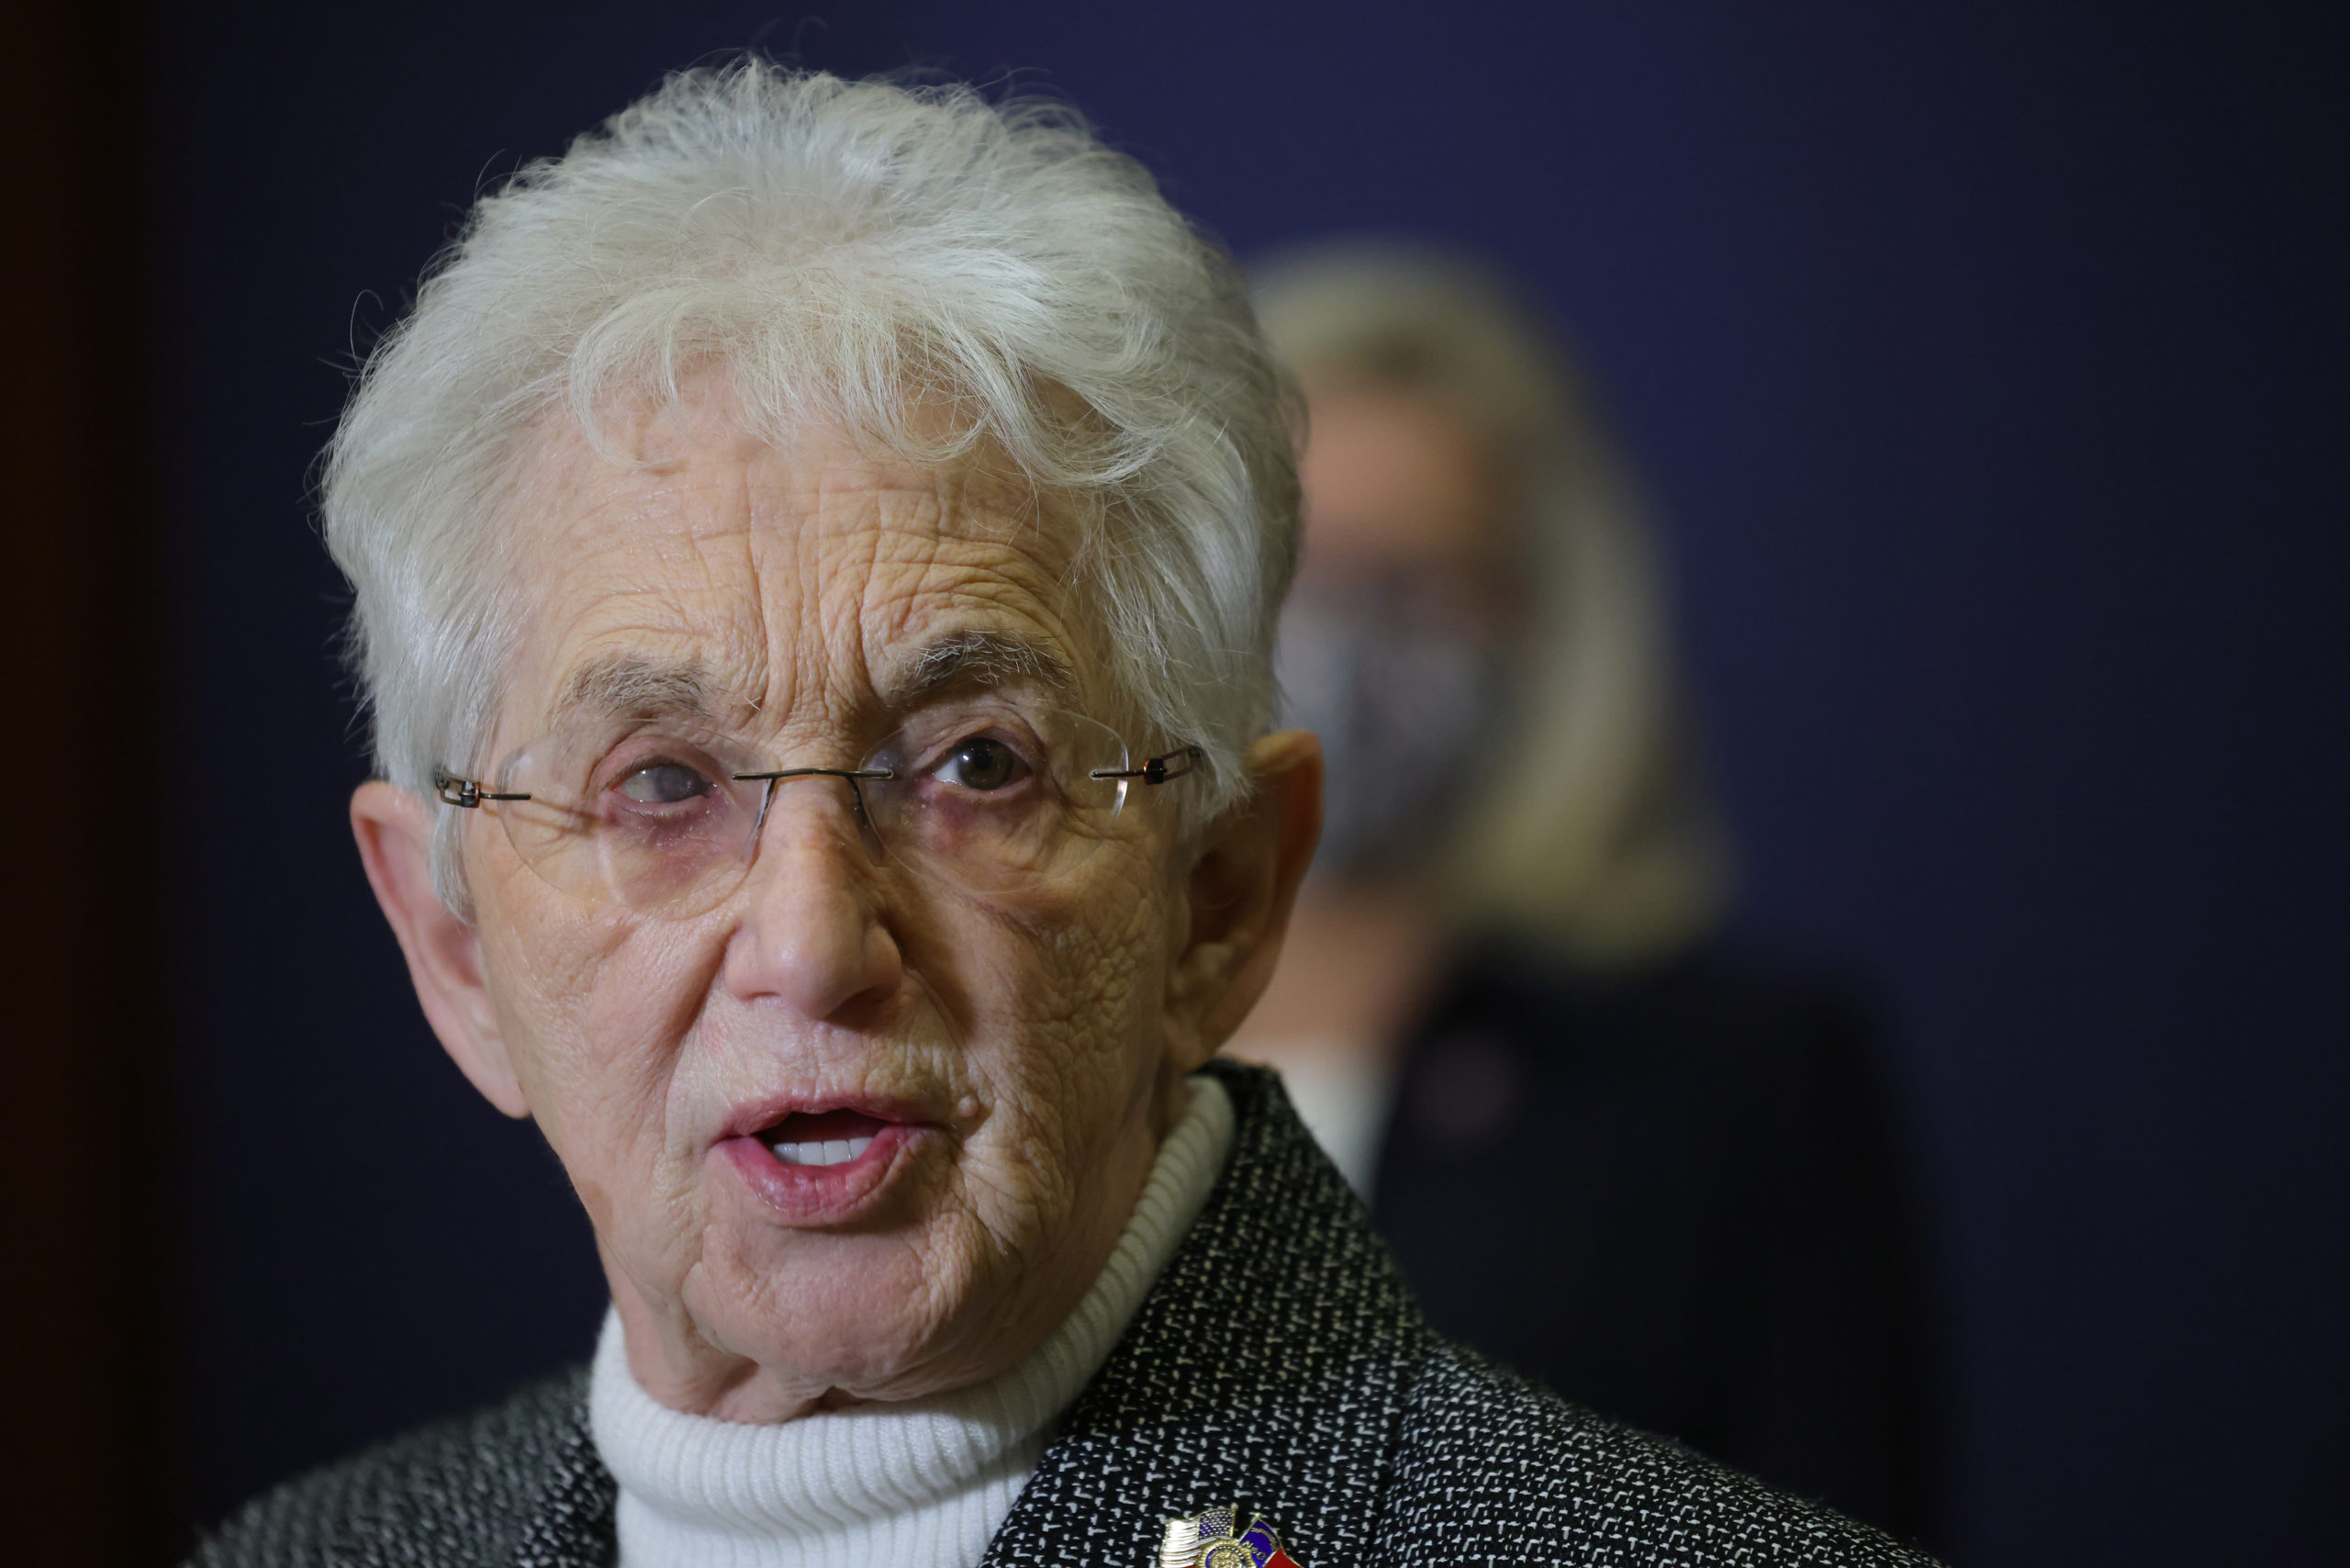 Rep. Virginia Foxx speaks at a press conference Tuesday. (Win McNamee/Getty Images)